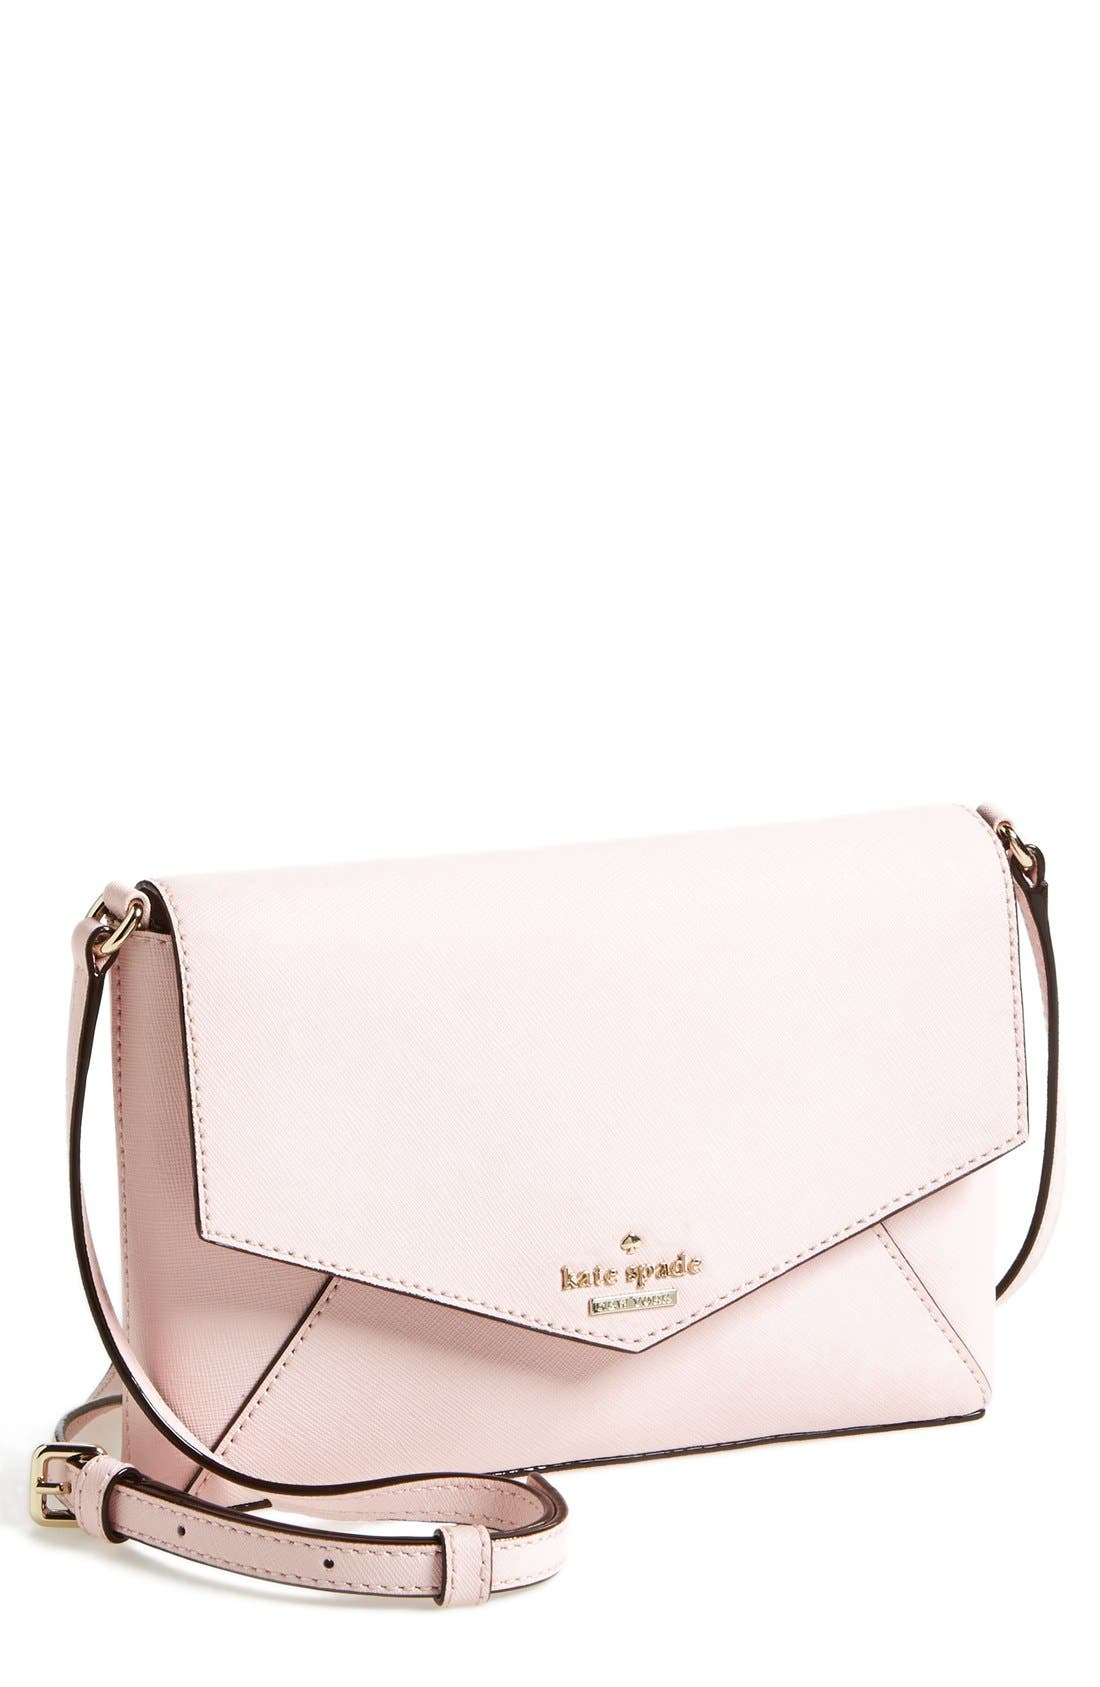 Main Image - kate spade new york 'cedar street - large monday' crossbody bag